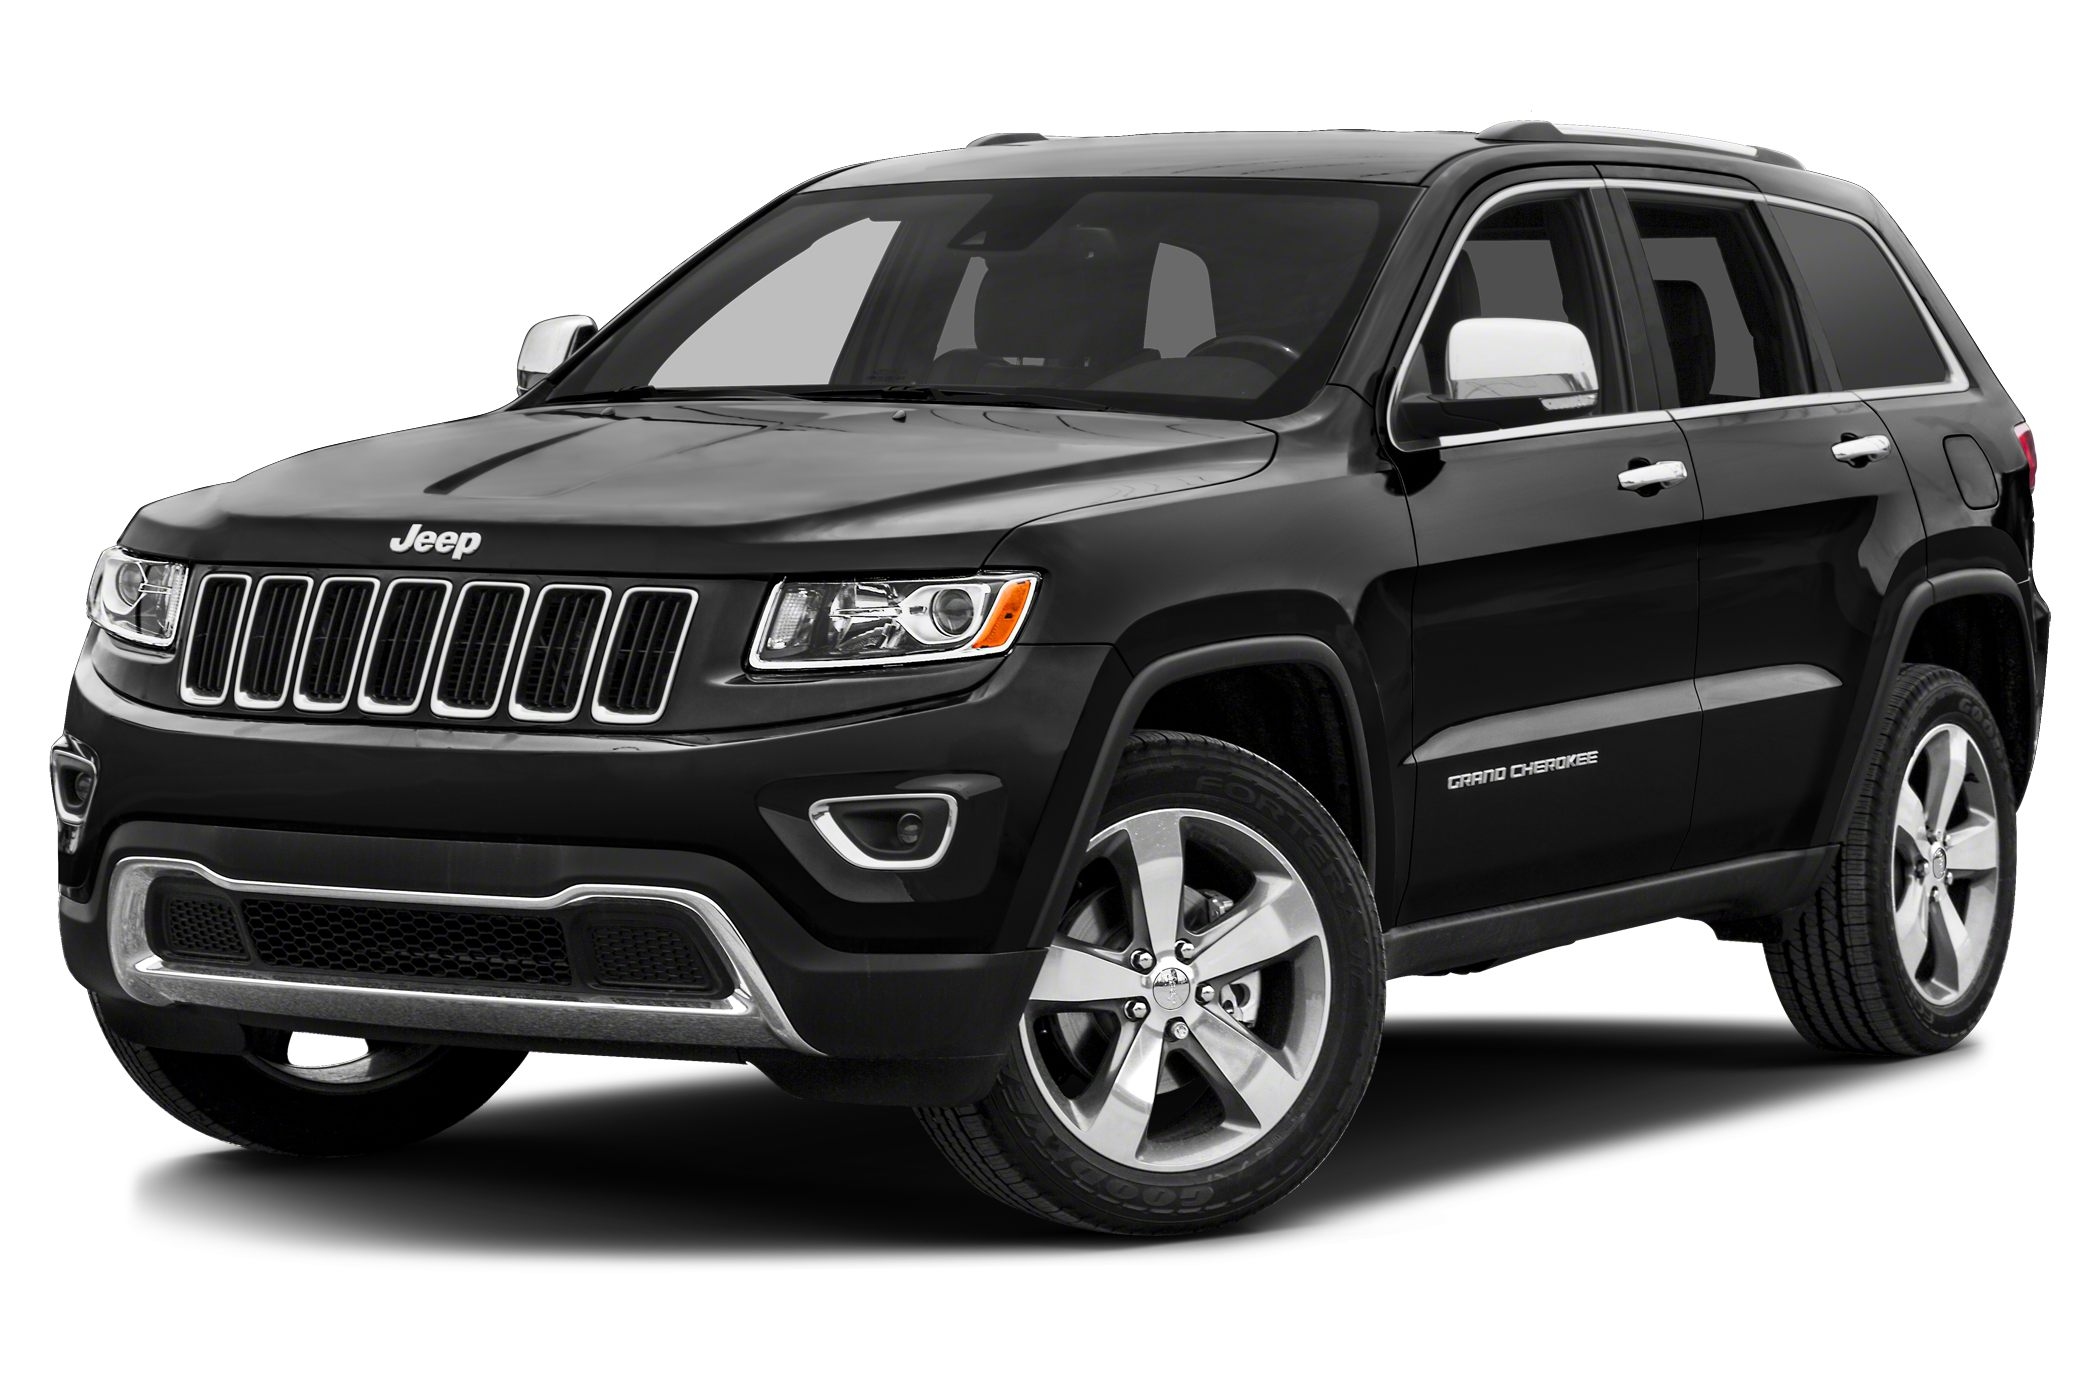 2015 Jeep Grand Cherokee Overland SUV for sale in Clifton Park for $47,290 with 1 miles